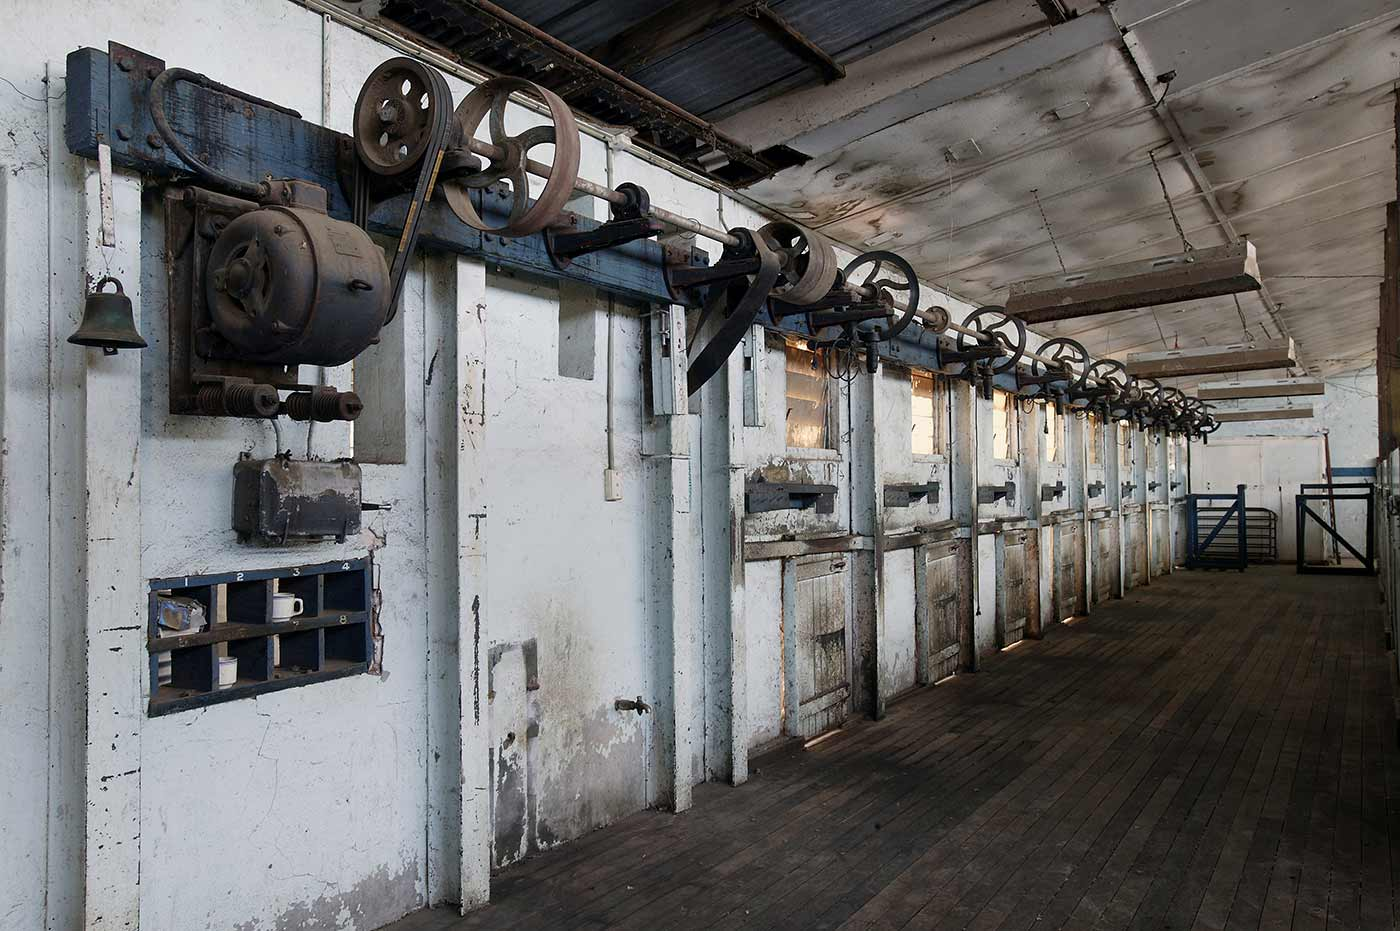 An internal view of Springfield woolshed. - click to view larger image